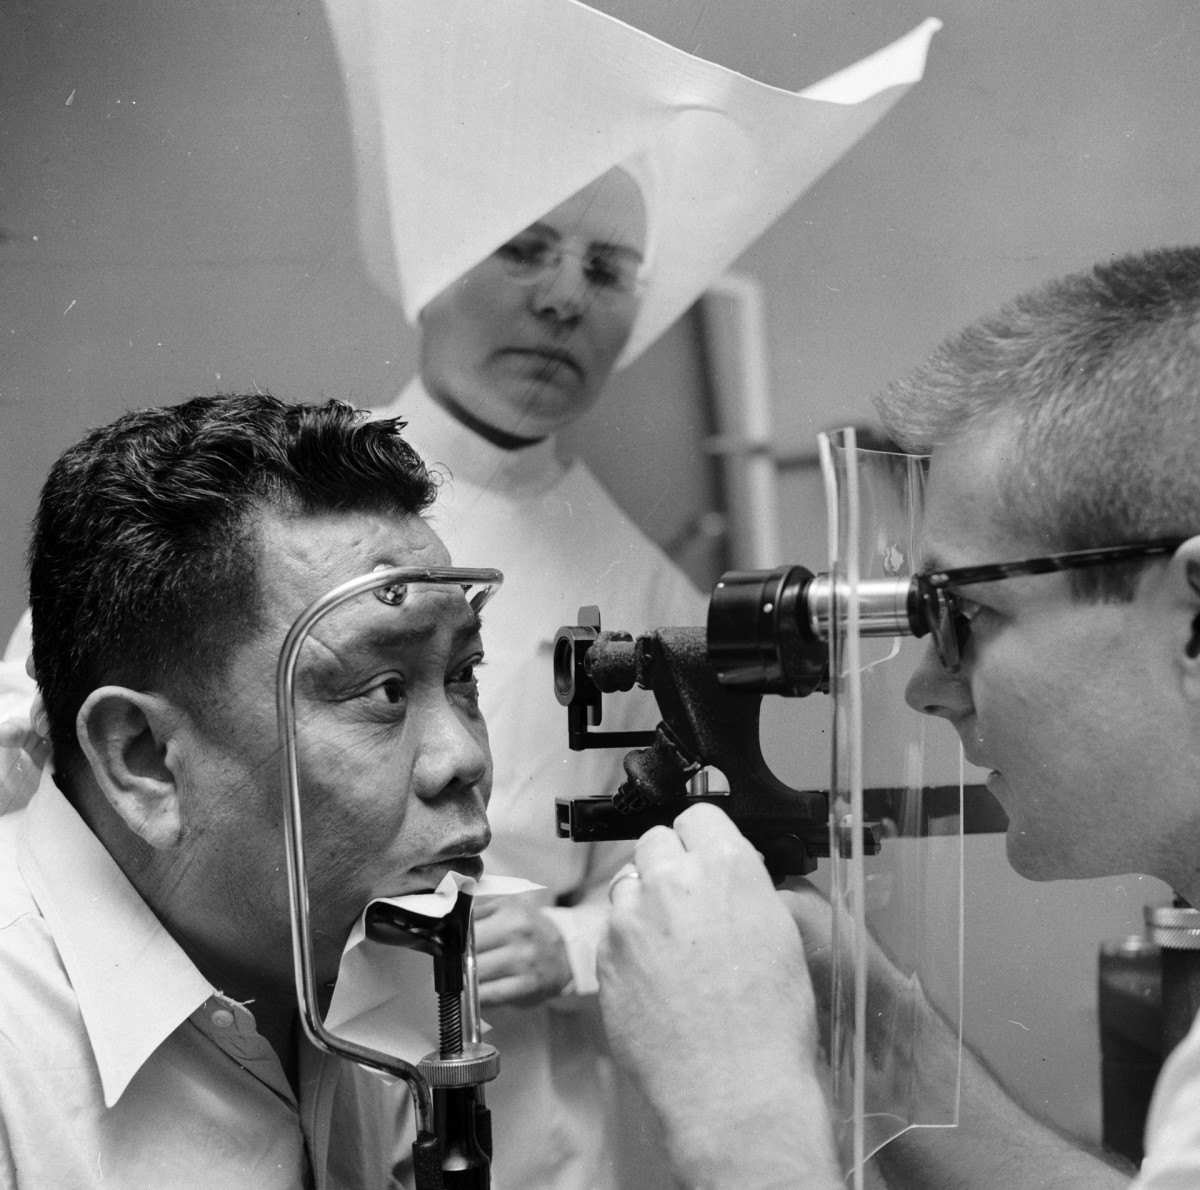 A patient at the US Public Health Service Hospital, in Carville, Louisiana, having his eyes examined, 1955. This hospital for leprosy sufferers was for many decades run by nuns.